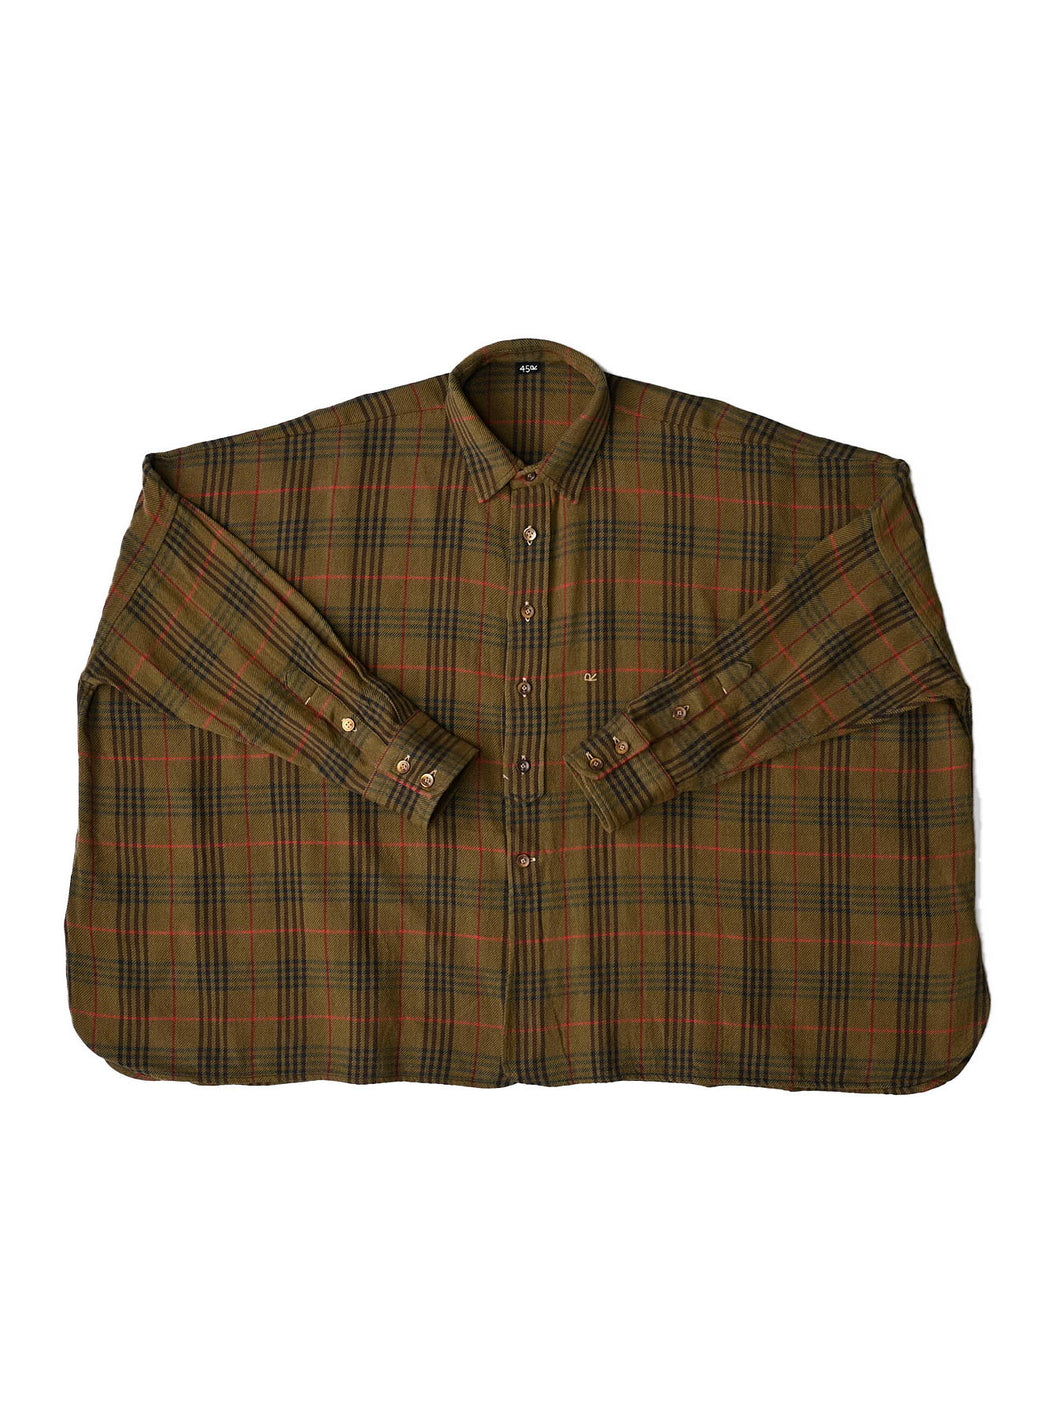 Indian Cotton Thin Flannel Big Shirt in khaki glen